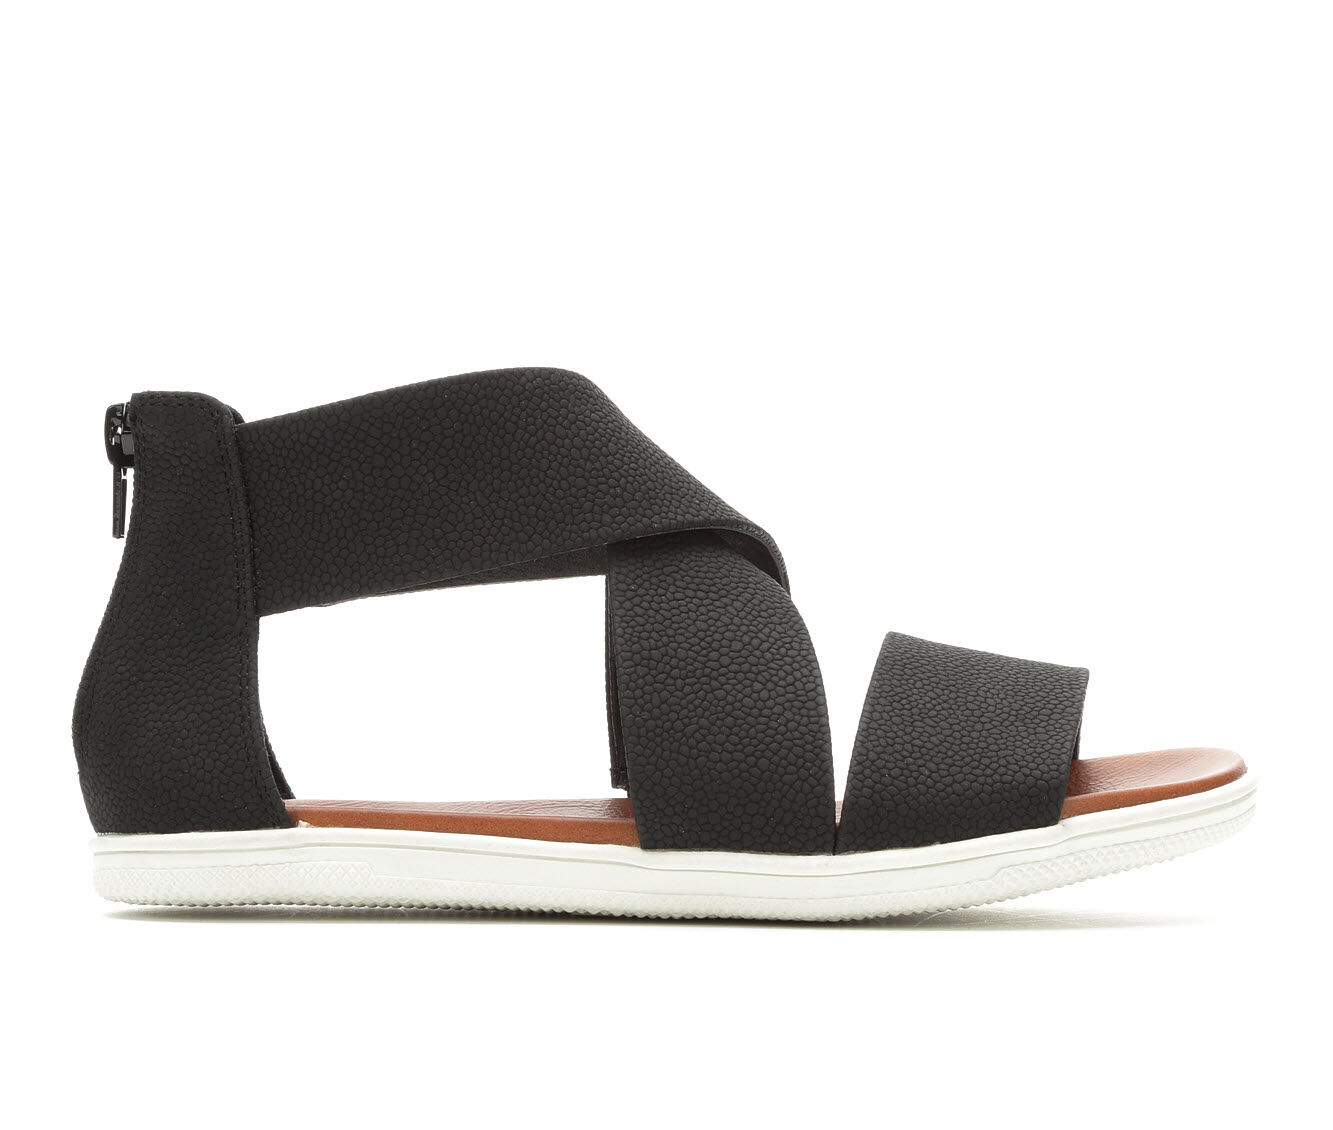 Buy Authentic Women's MIA Deana Strappy Sandals Black